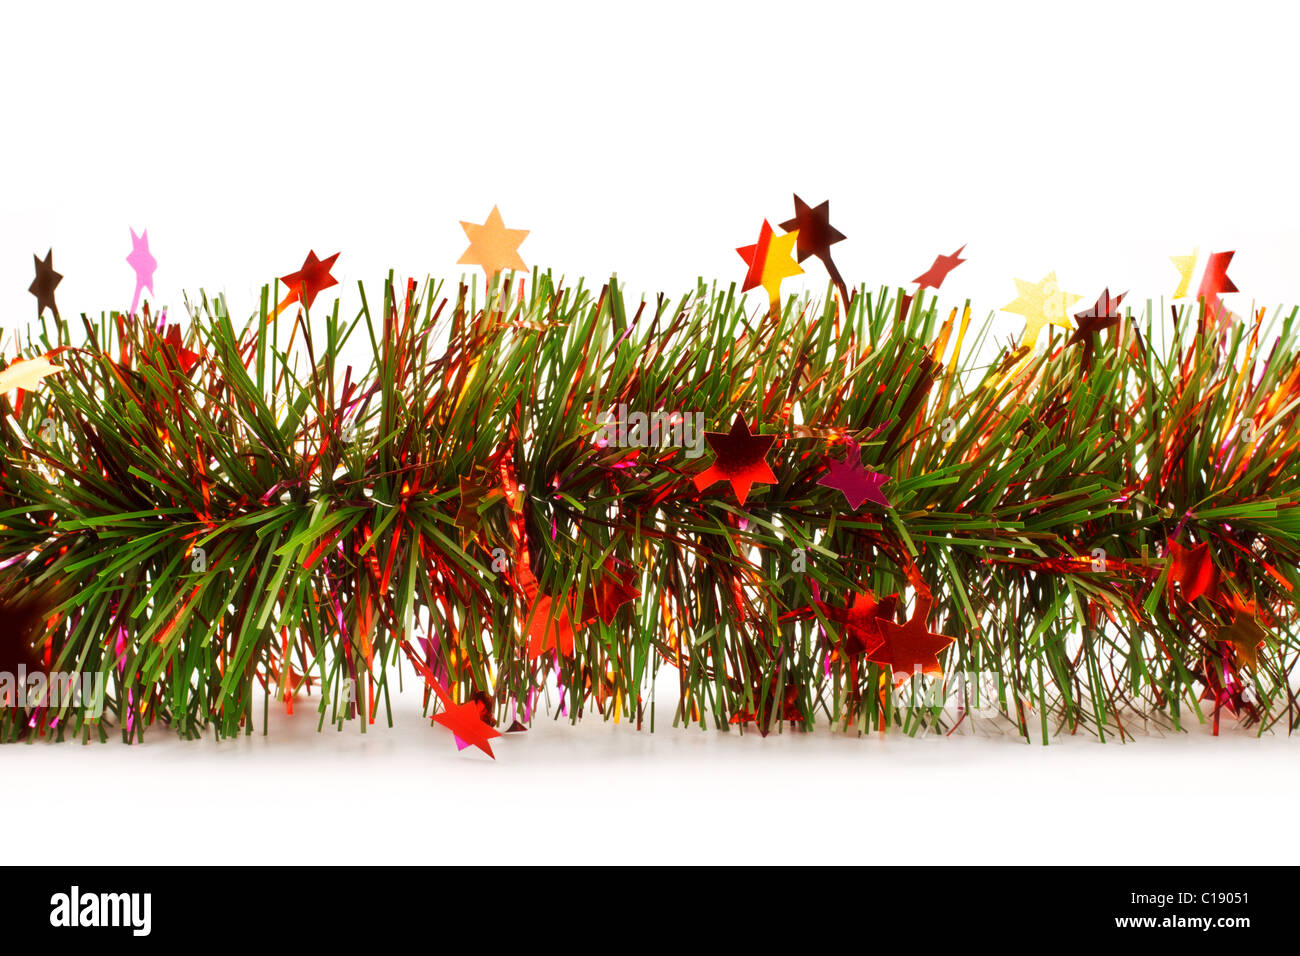 christmas tinsel garland with stars, isolated on white - Stock Image